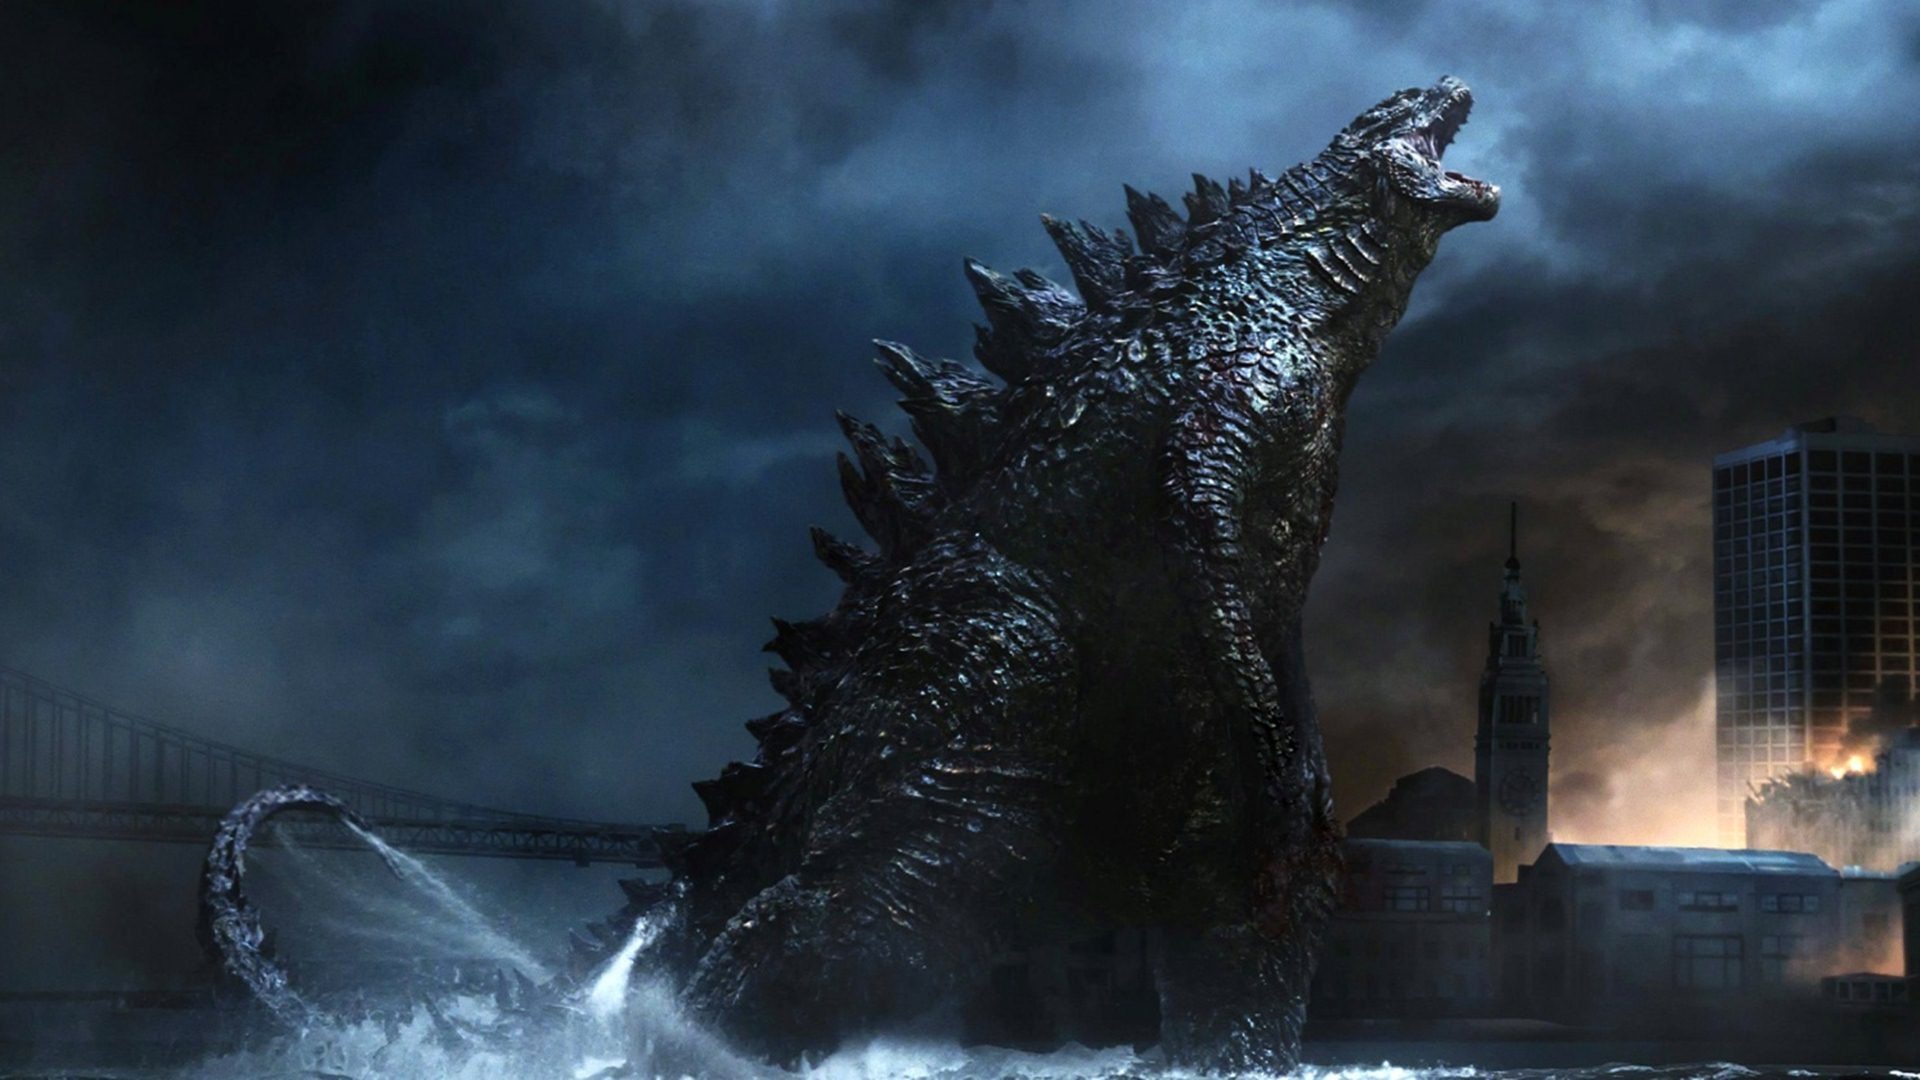 Annunciato il trailer di Godzilla II: King of Monsters